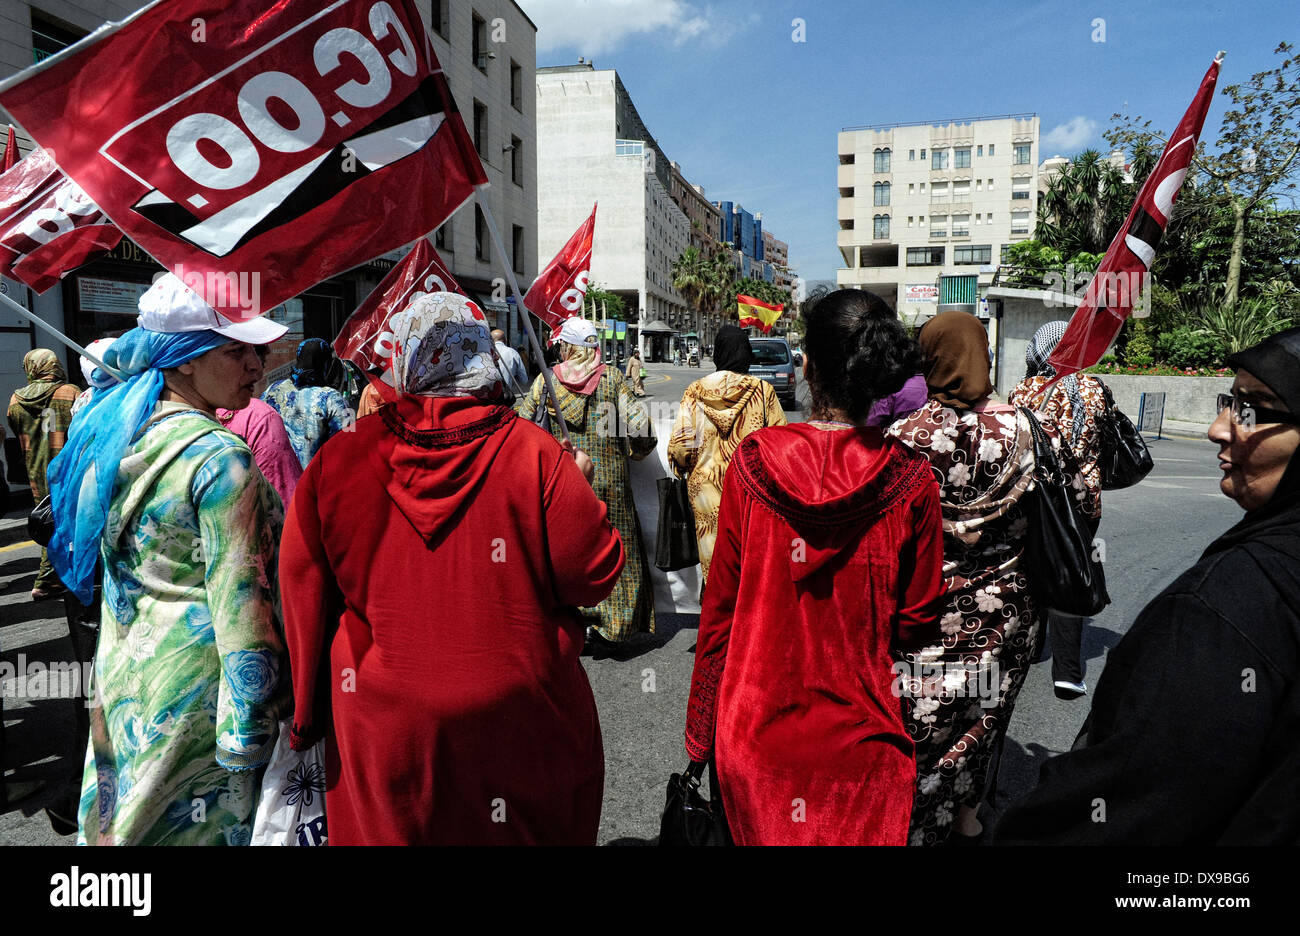 Muslim women of the CCOO trade union protest against joblessness and racial discrimination in employment. Ceuta . Spain - Stock Image